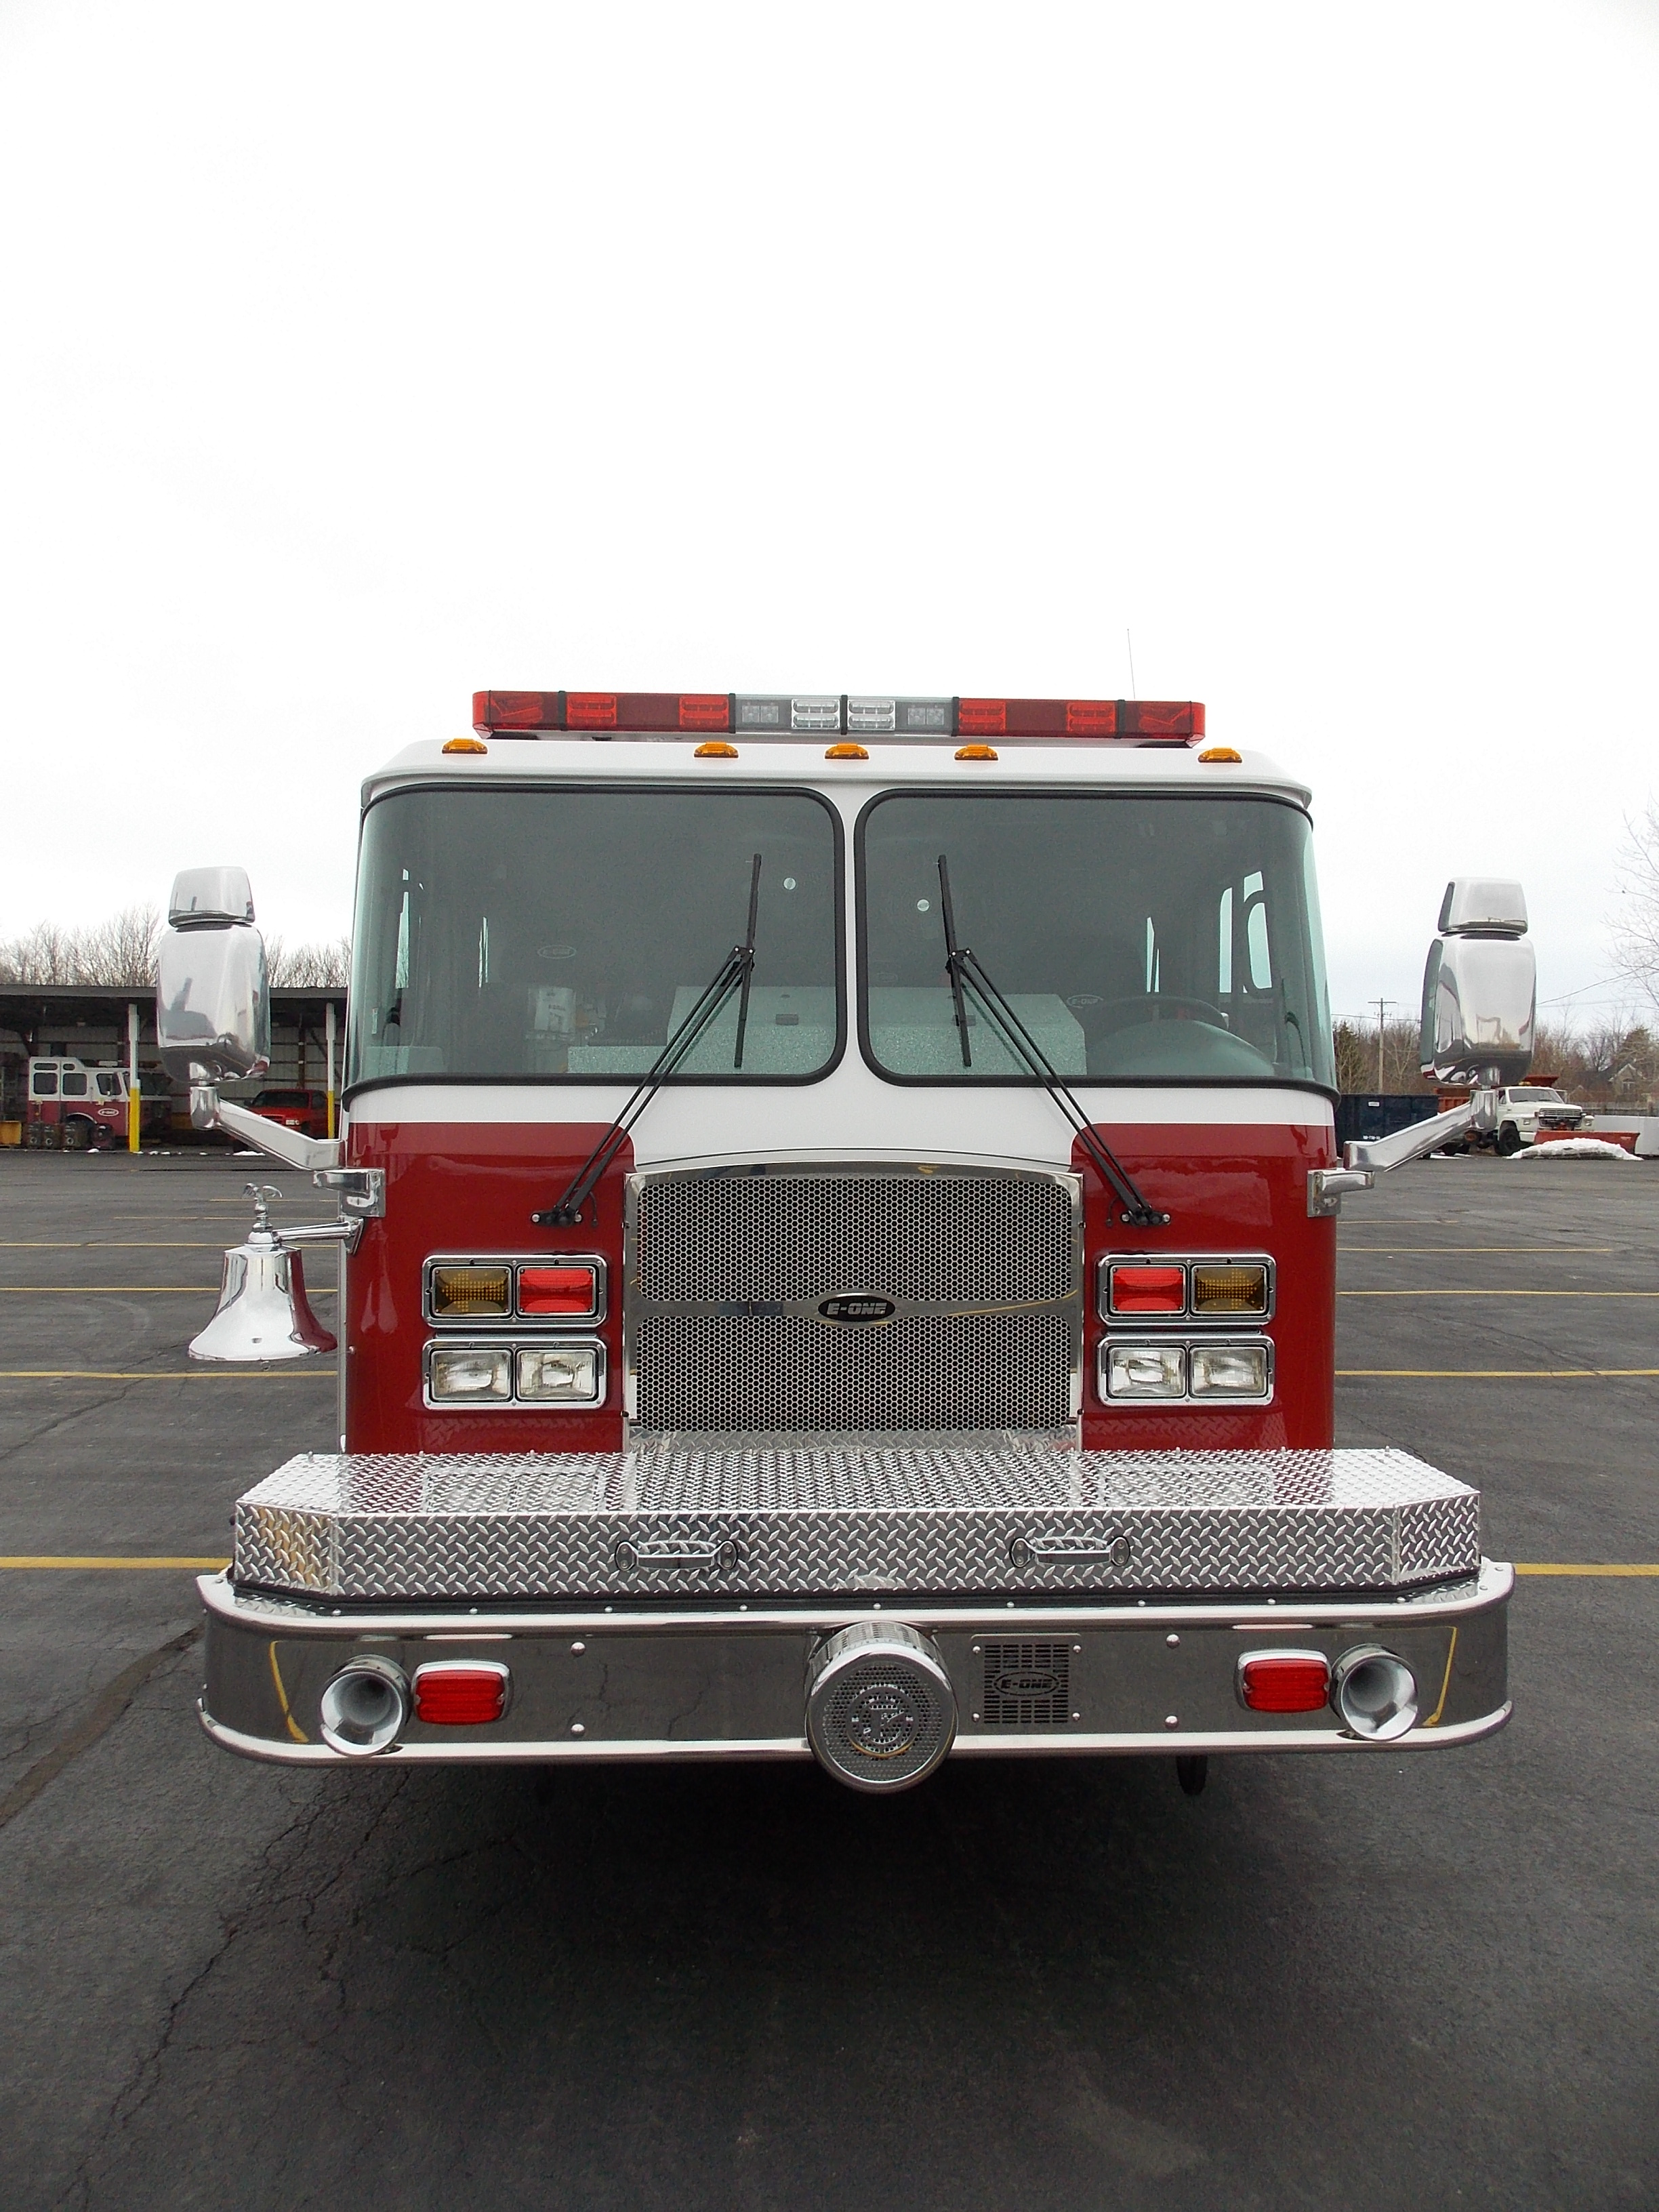 E-ONE Hamburg STAINLESS SS eMAX top mount pumper - Front View